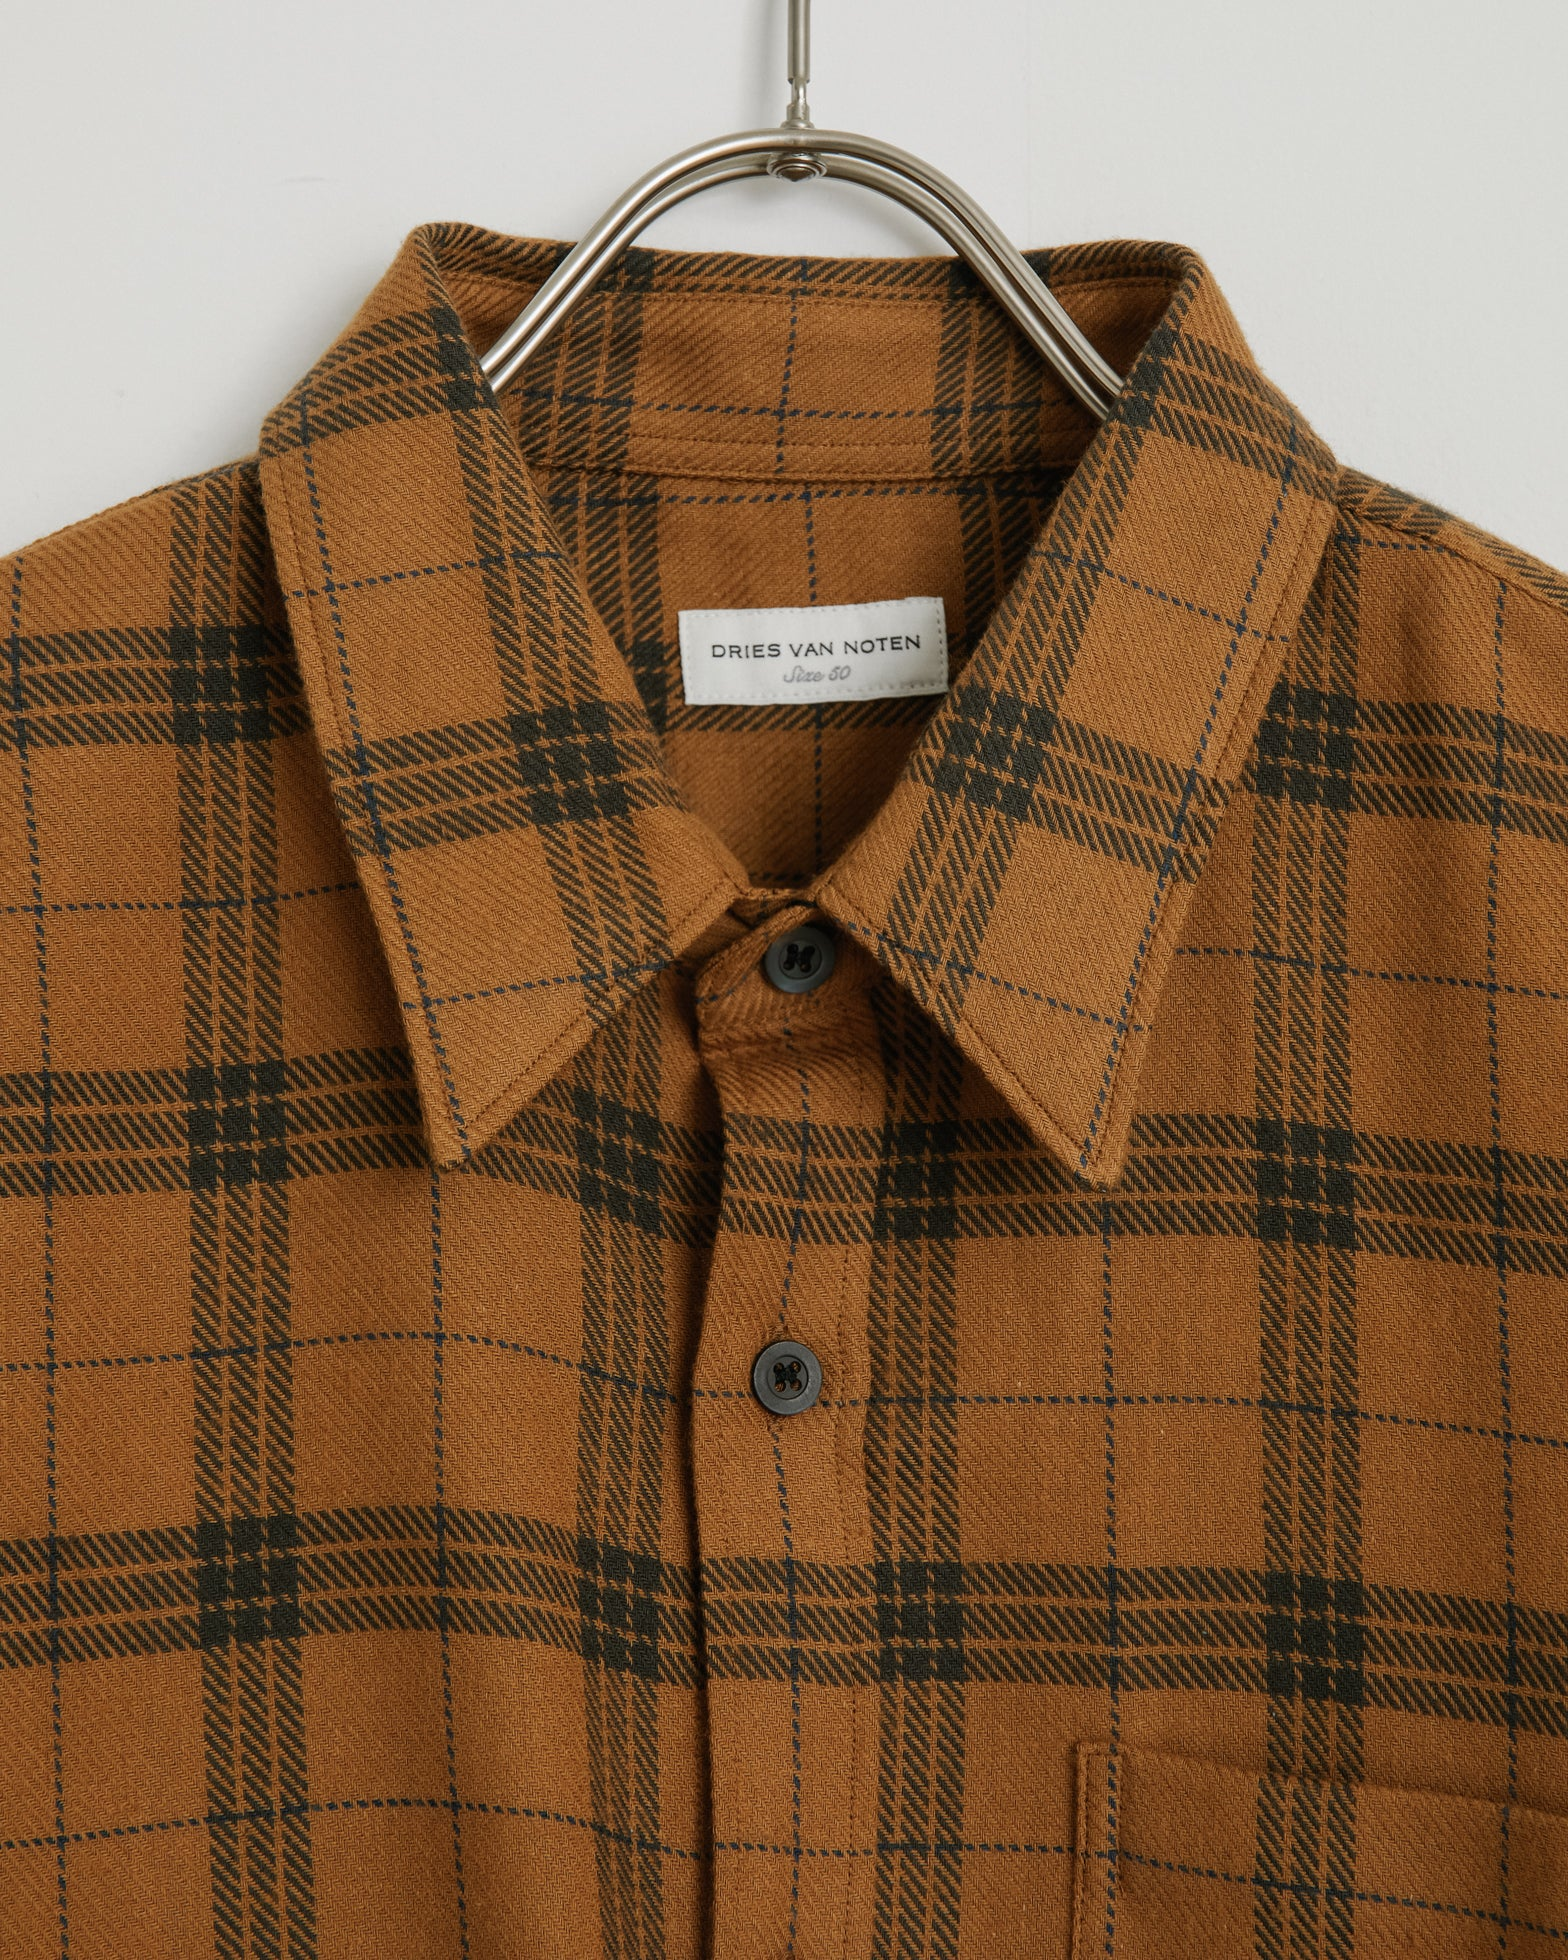 Corbino 1266 Shirt in Camel